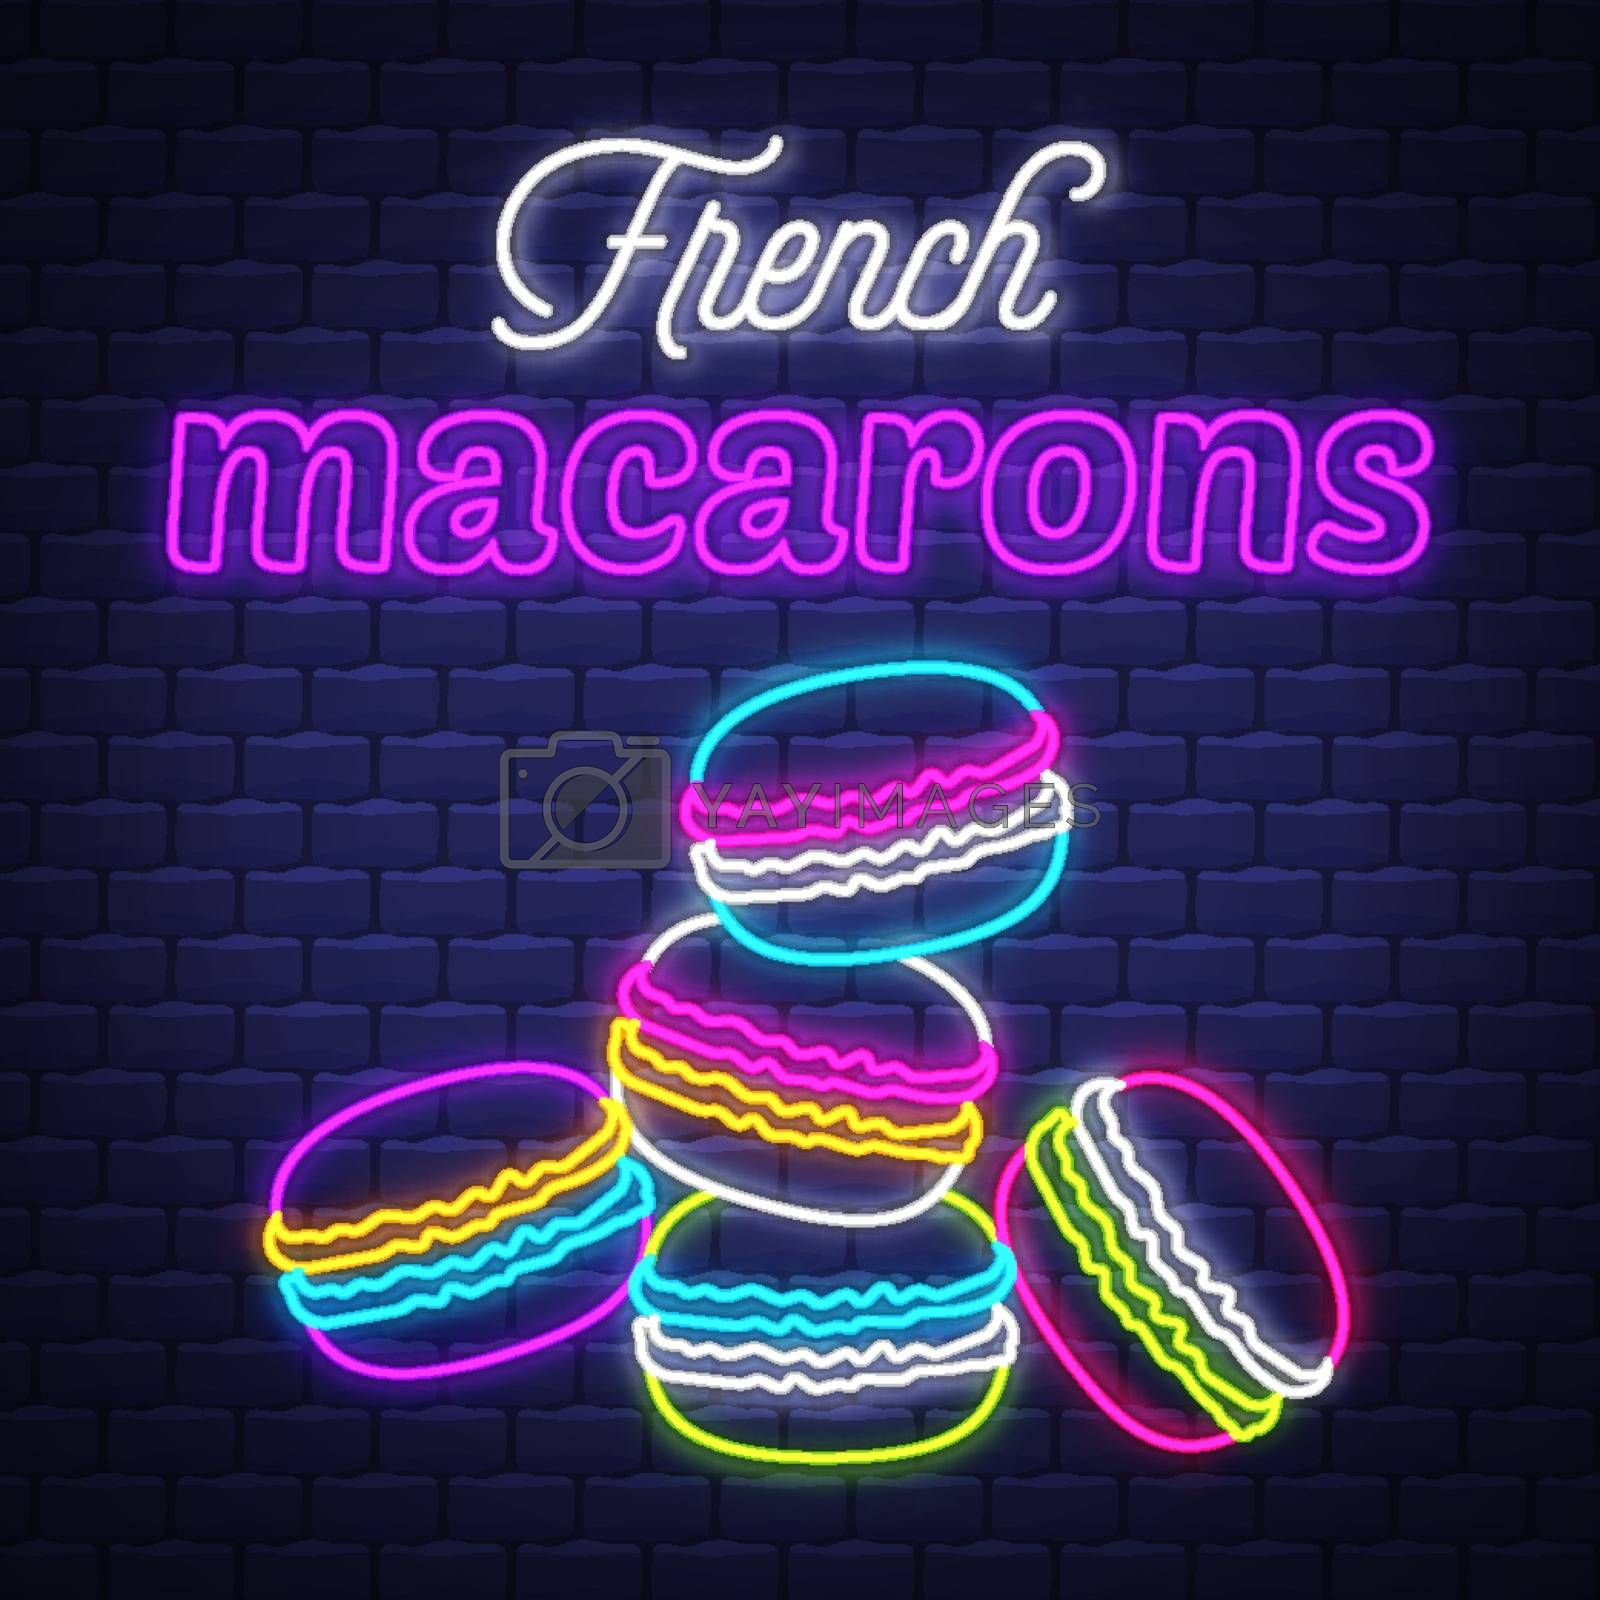 French macarons - Neon Sign Vector. French macarons - neon sign  by balasoiu